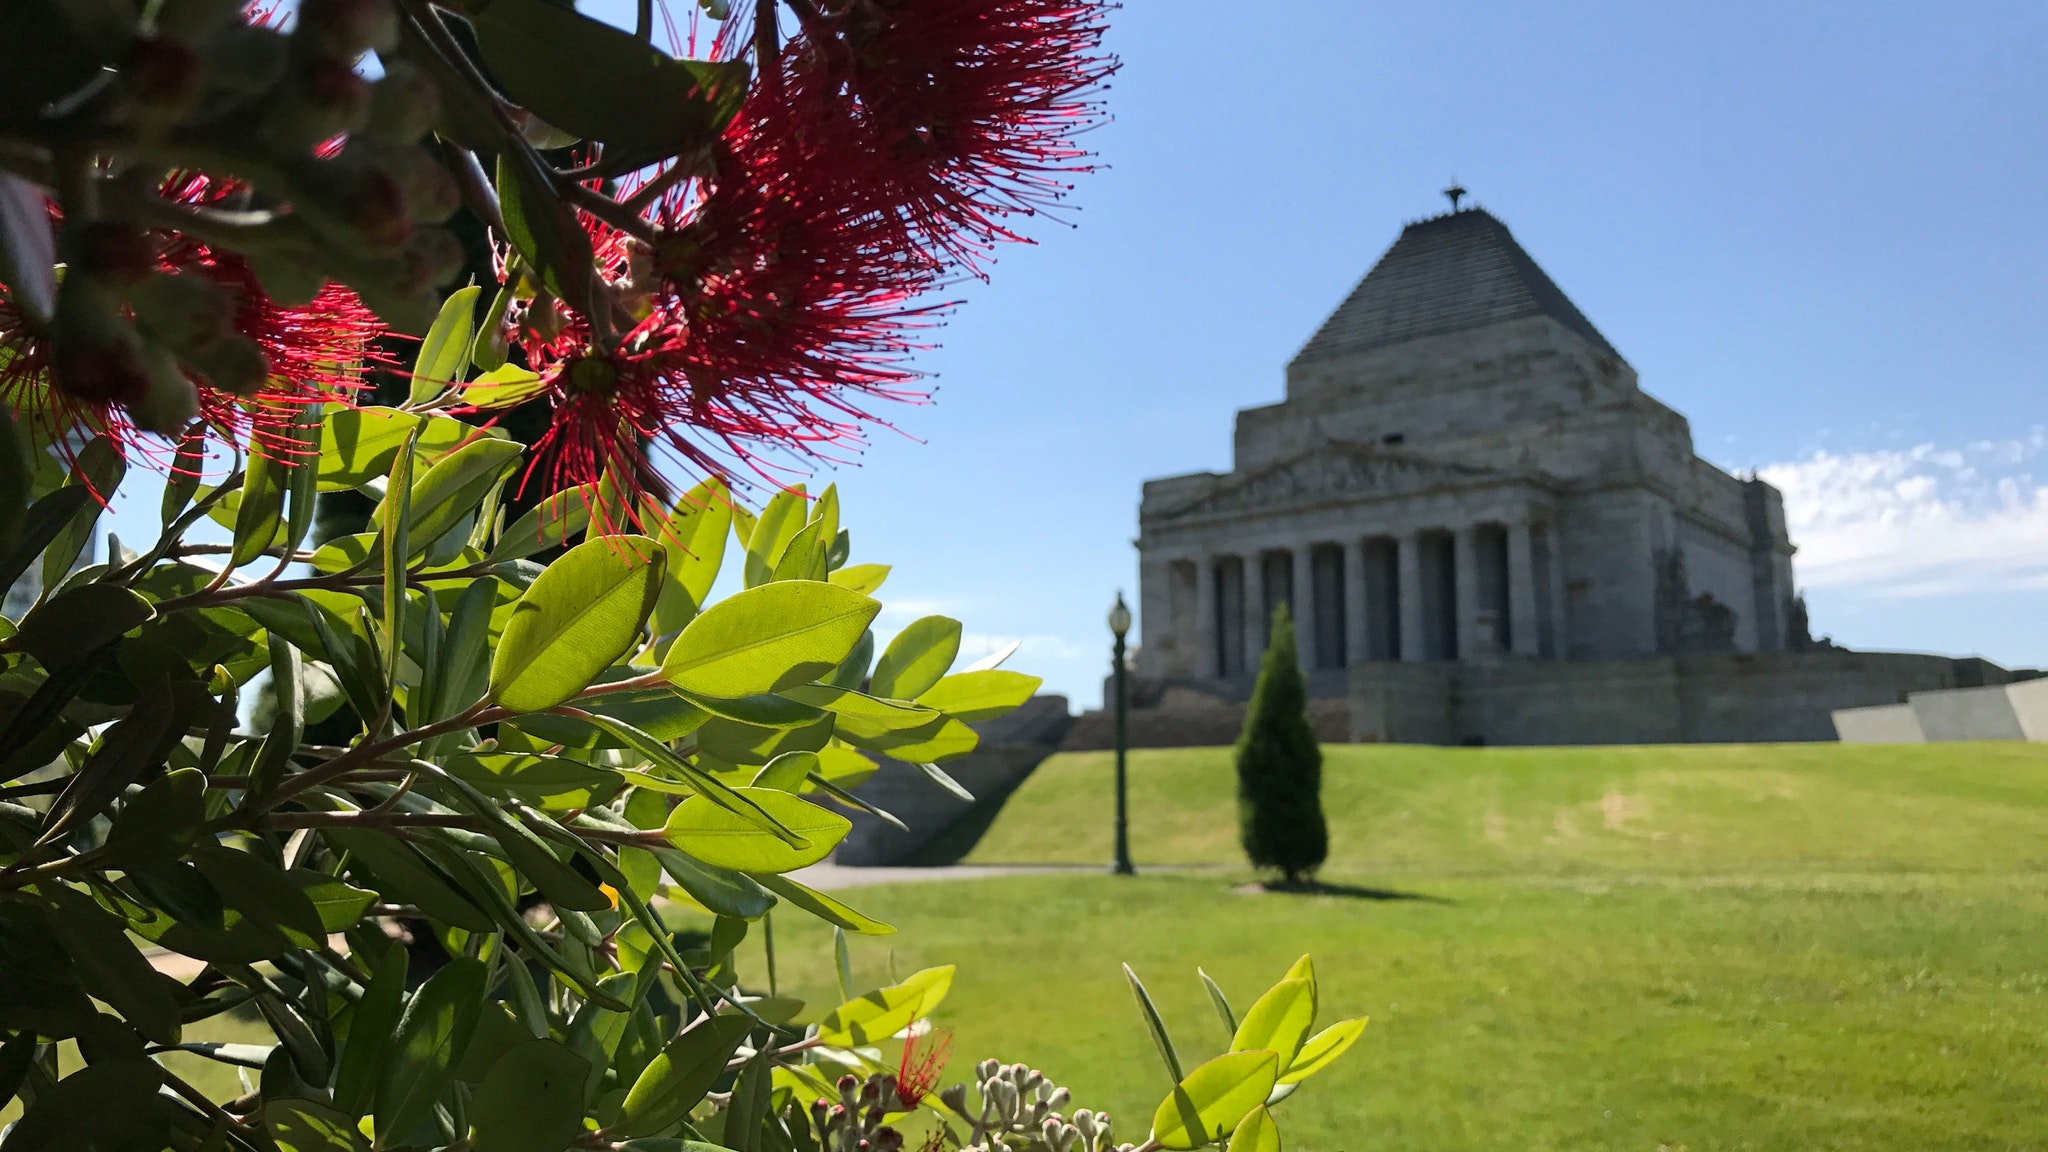 Gardens of Remembrance tour